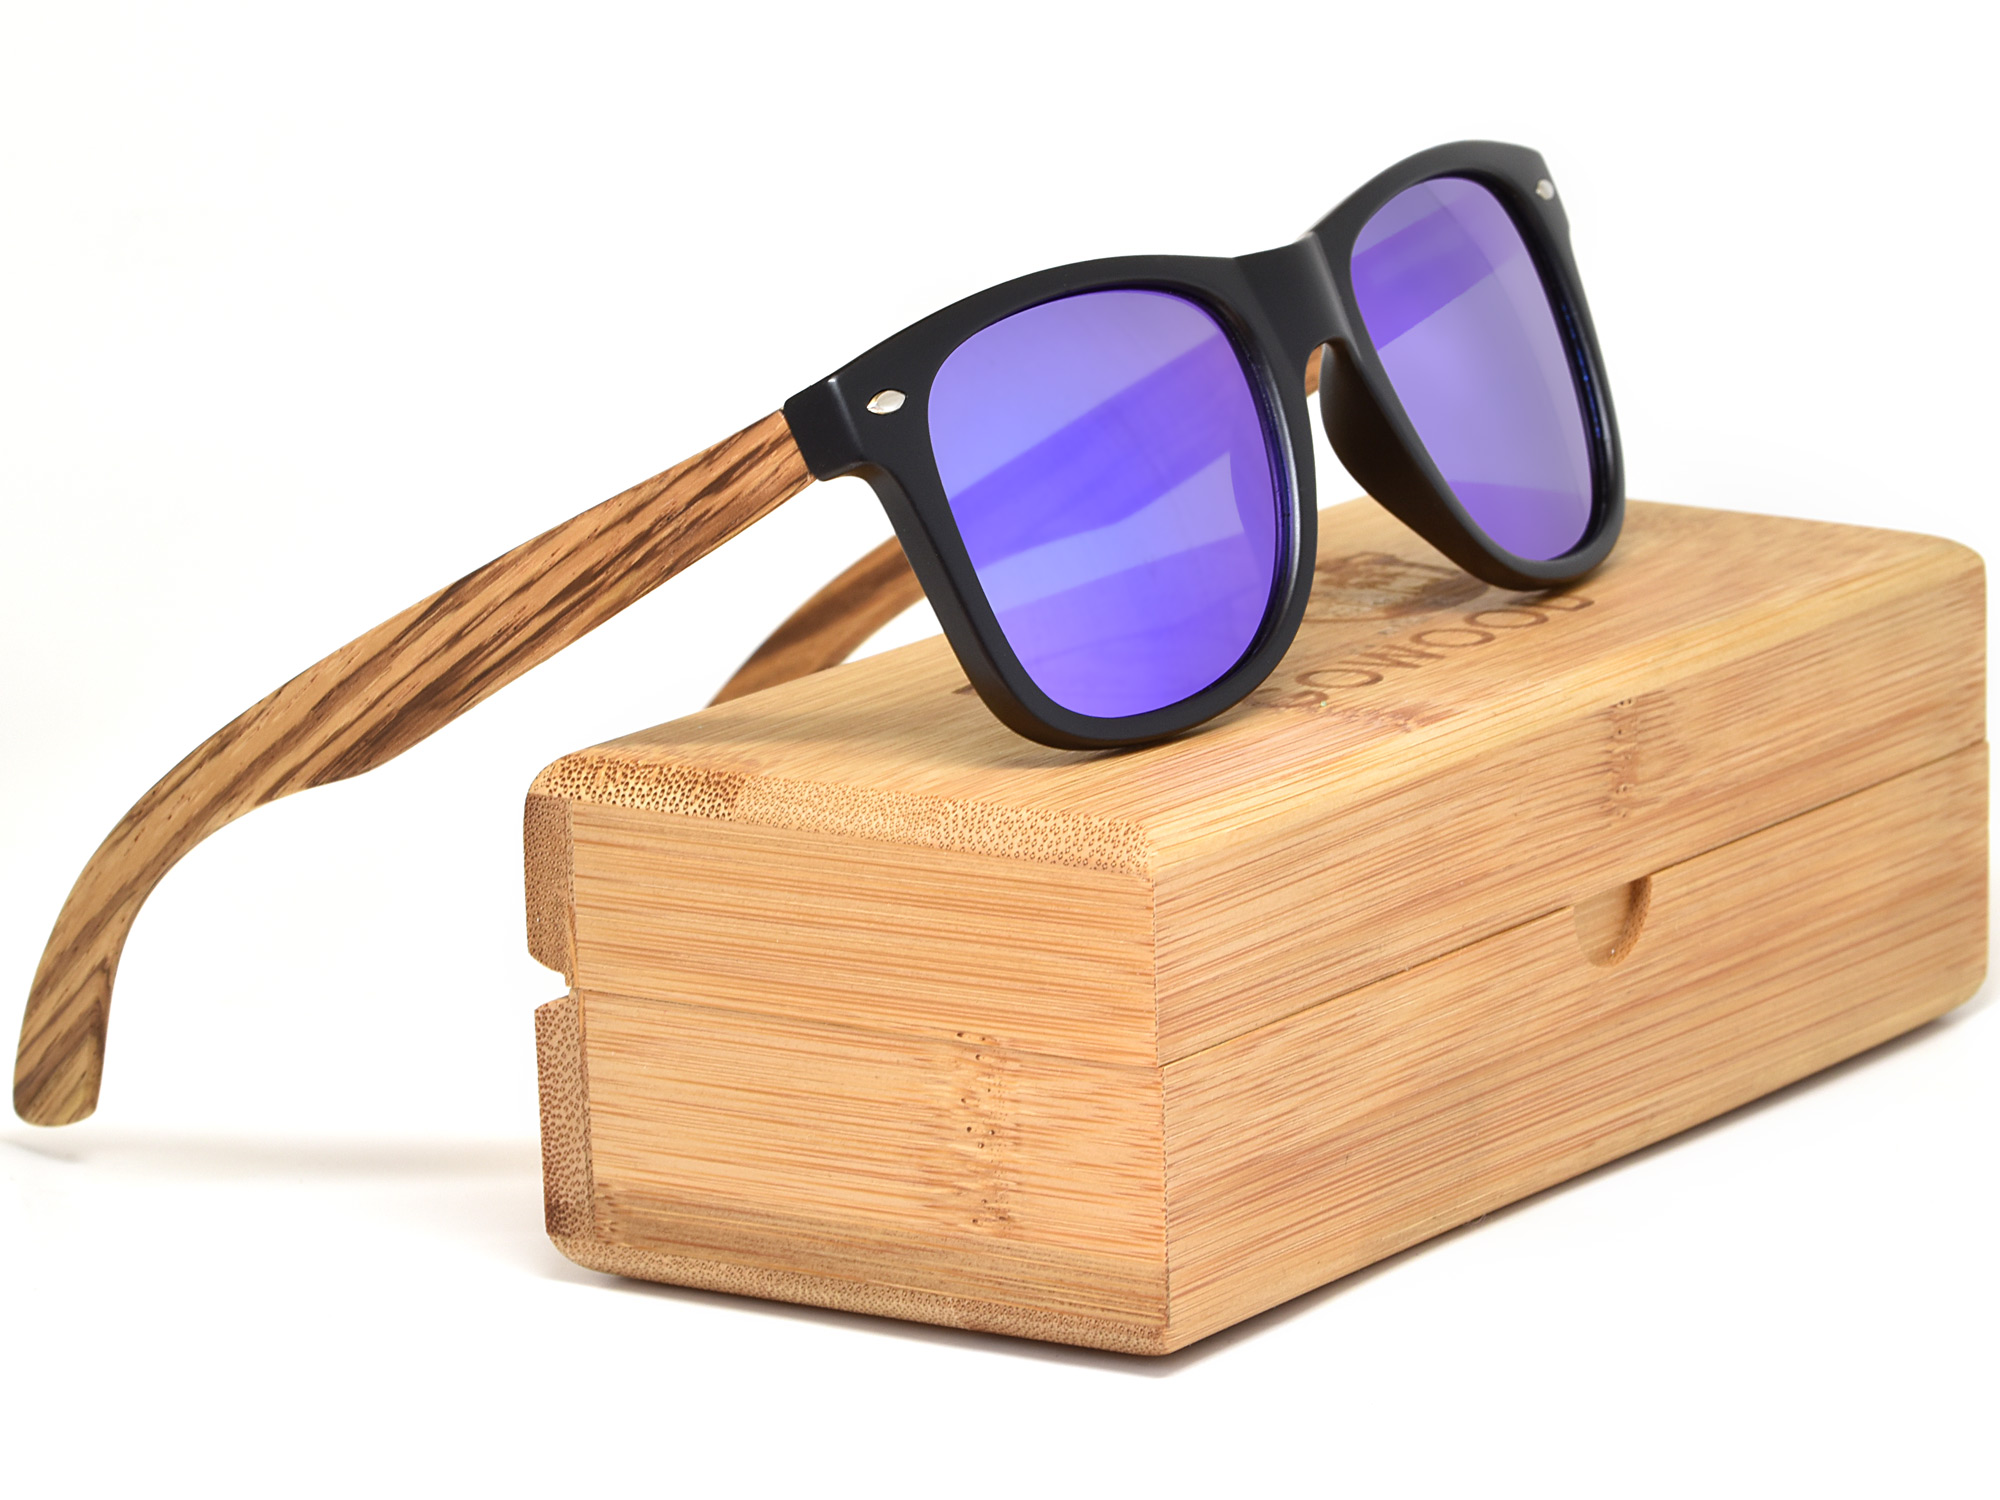 Zebra wood sunglasses with blue mirrored lenses set